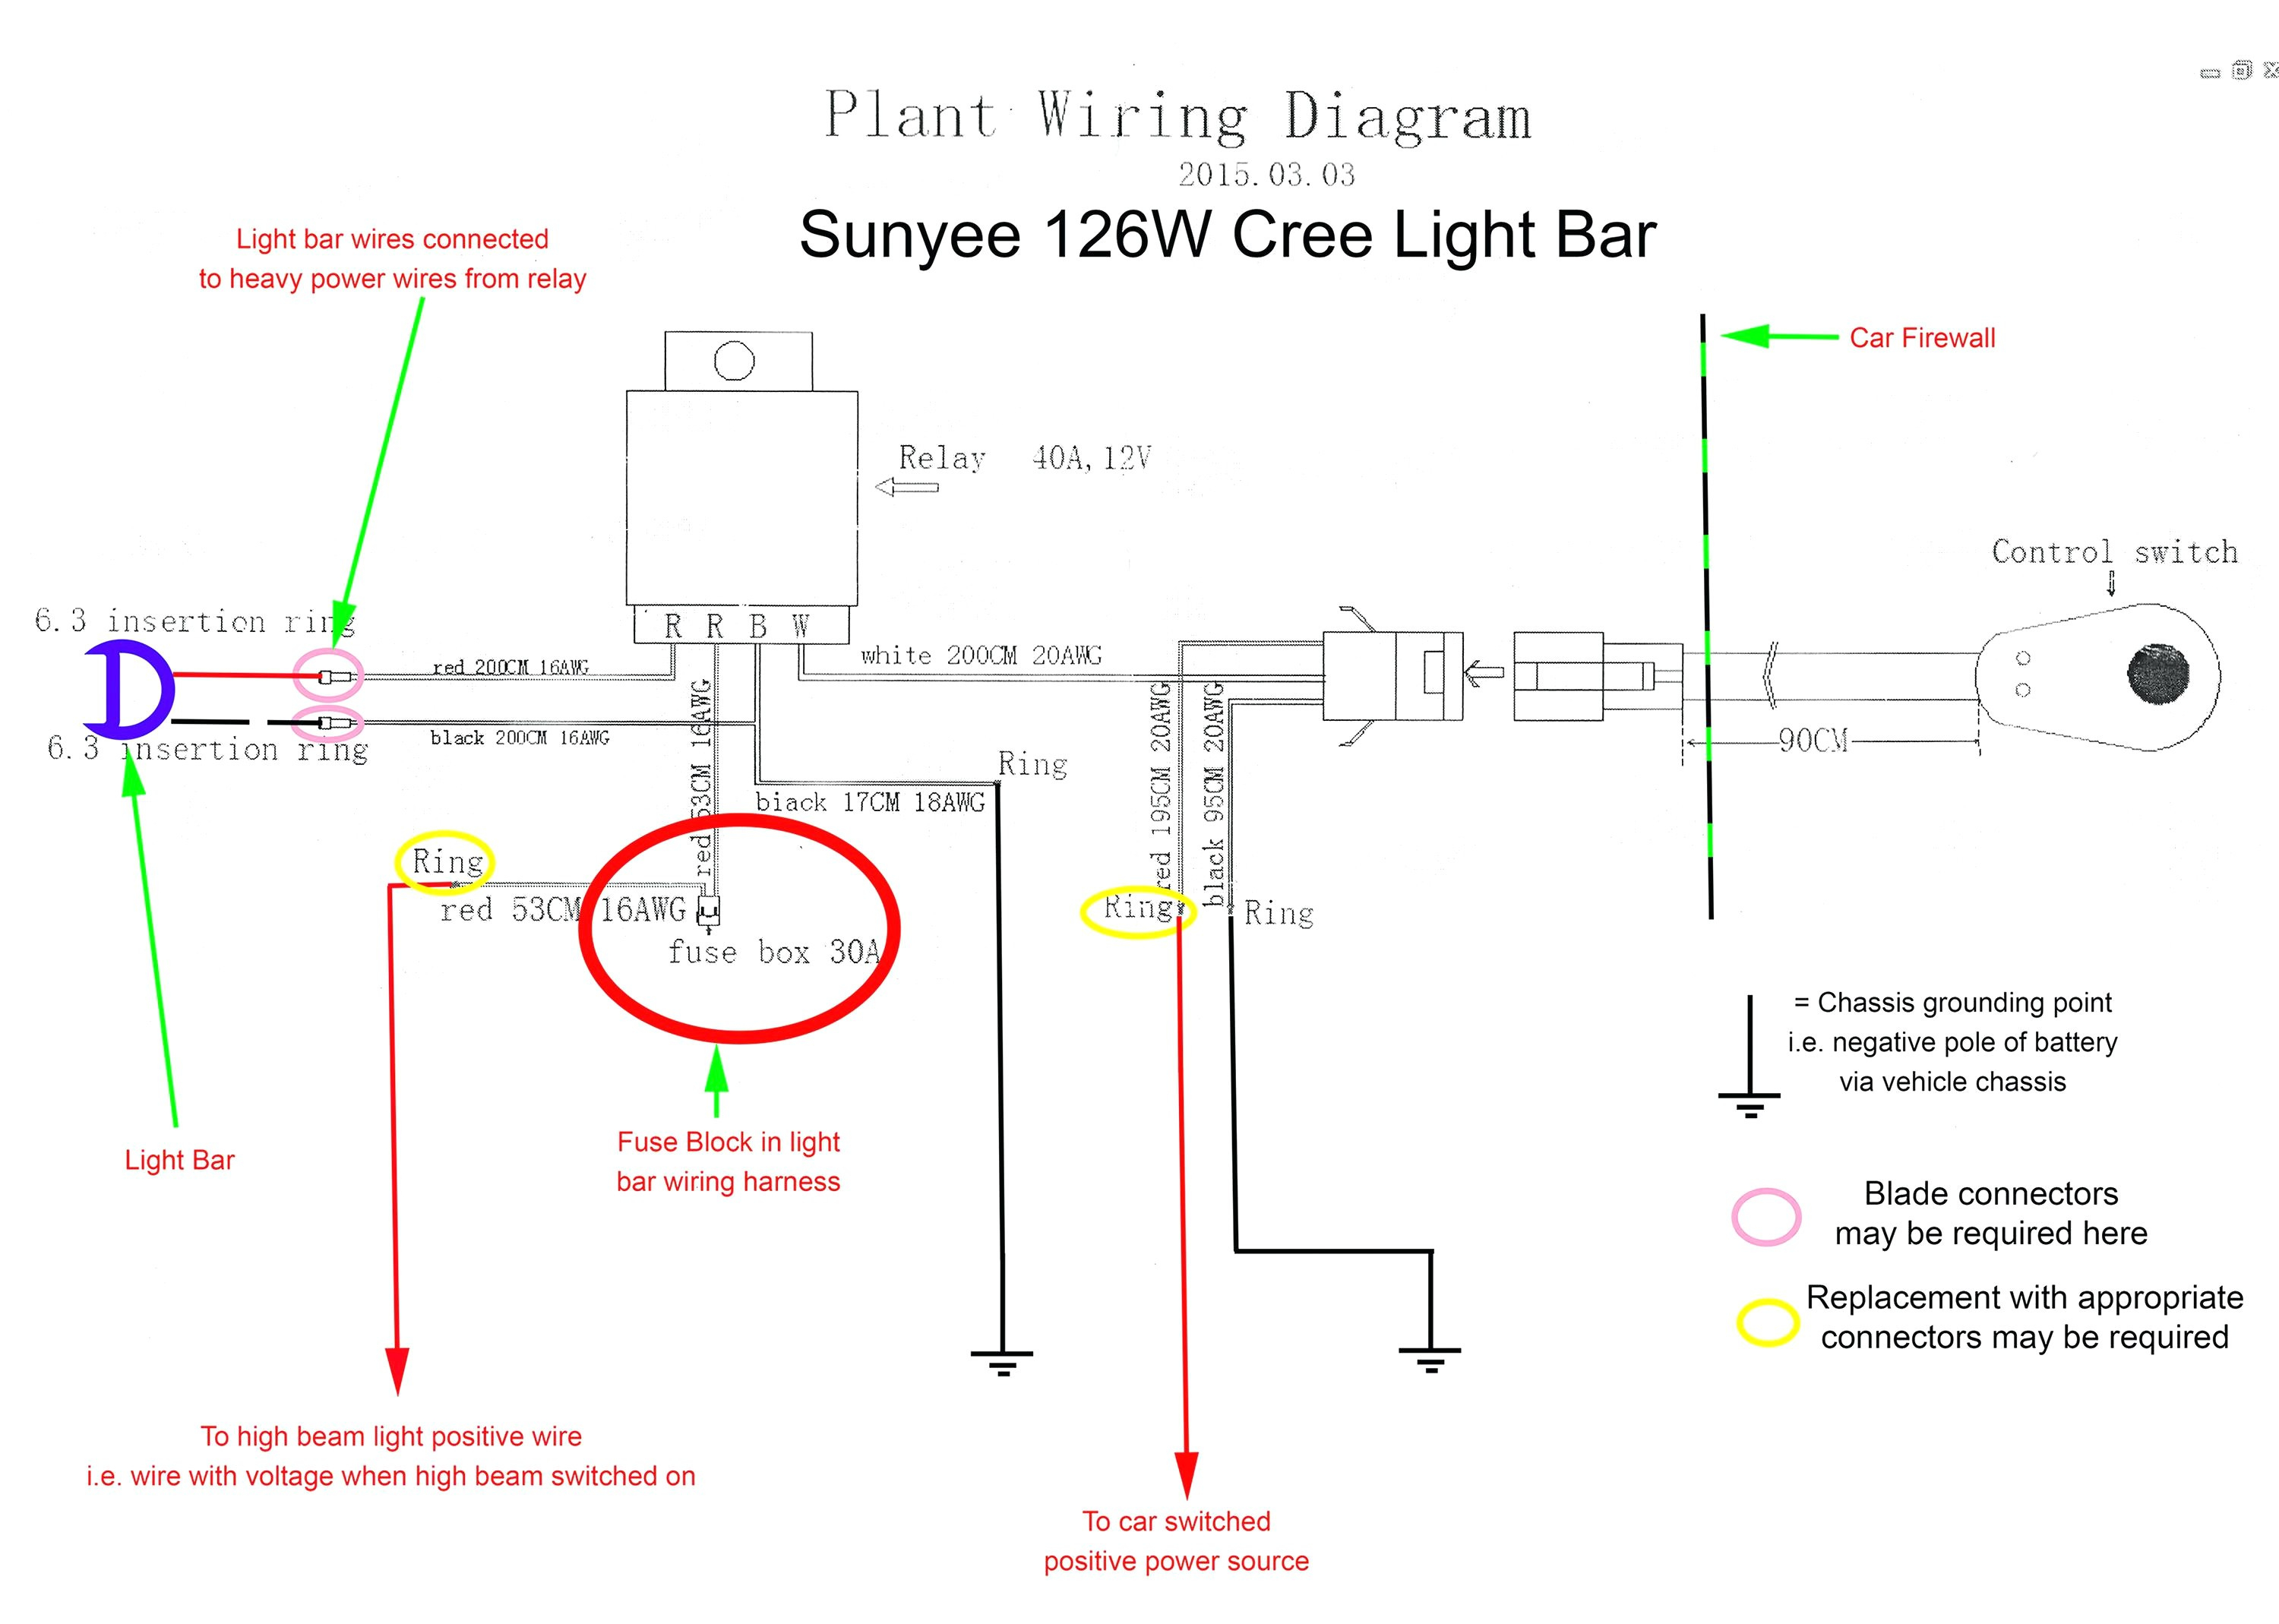 motor rtd wiring diagram Collection-motor rtd wiring diagram new rtd wiring diagram fresh 3 wire pt100 3 wire thermocouple wiring 5-j